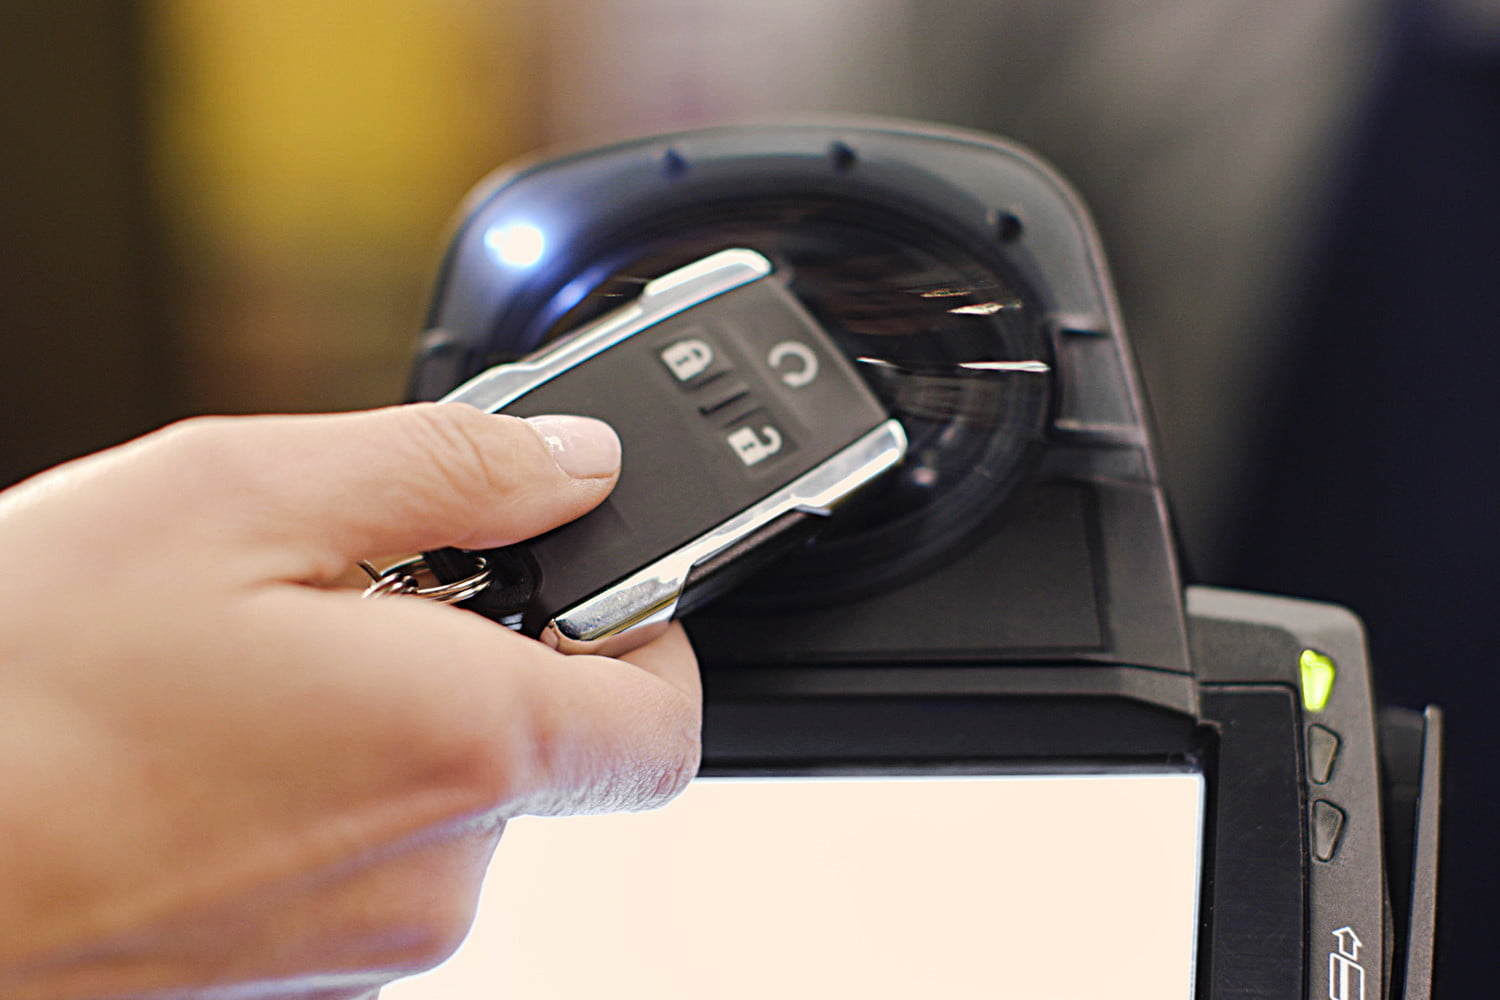 MasterCard Brings Payments to Connected Devices | Digital Trends